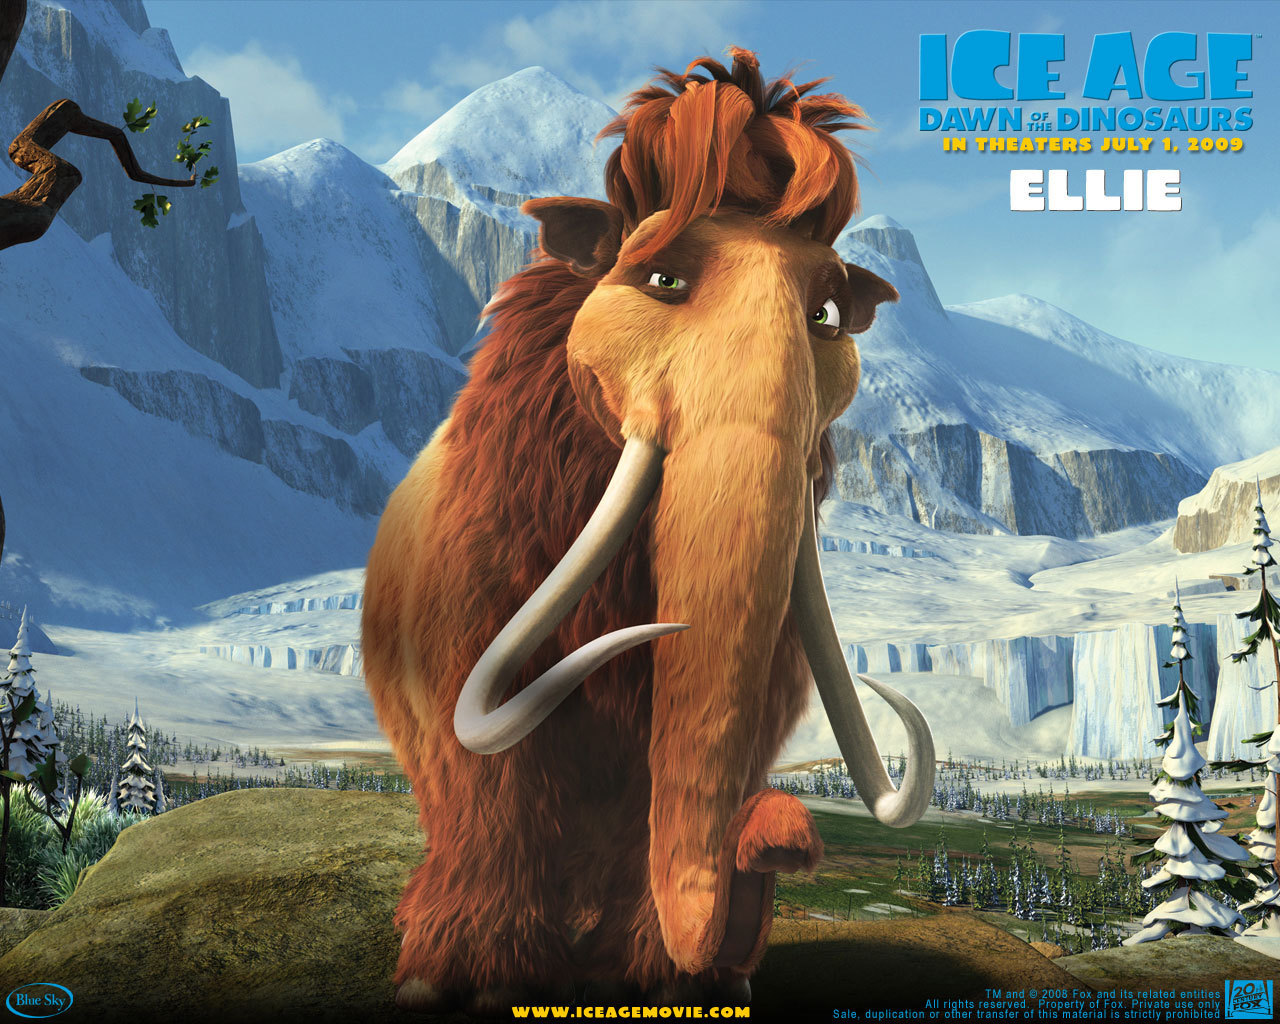 Ice Age 2 Movie Characters Movies Ice Age 3 Dawn of The